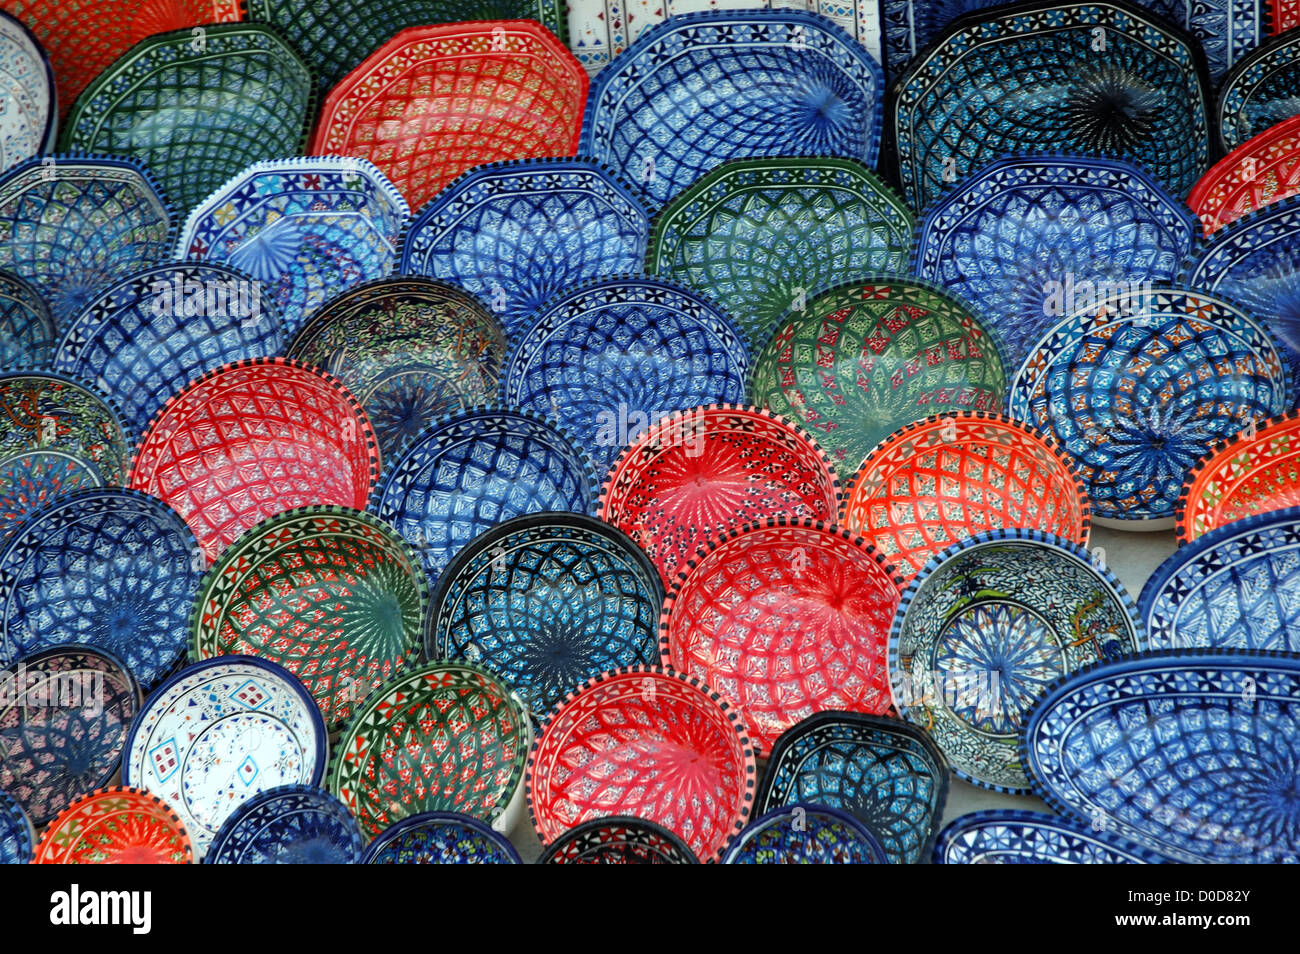 Pottery on sale at a shop in Tunisia - Stock Image